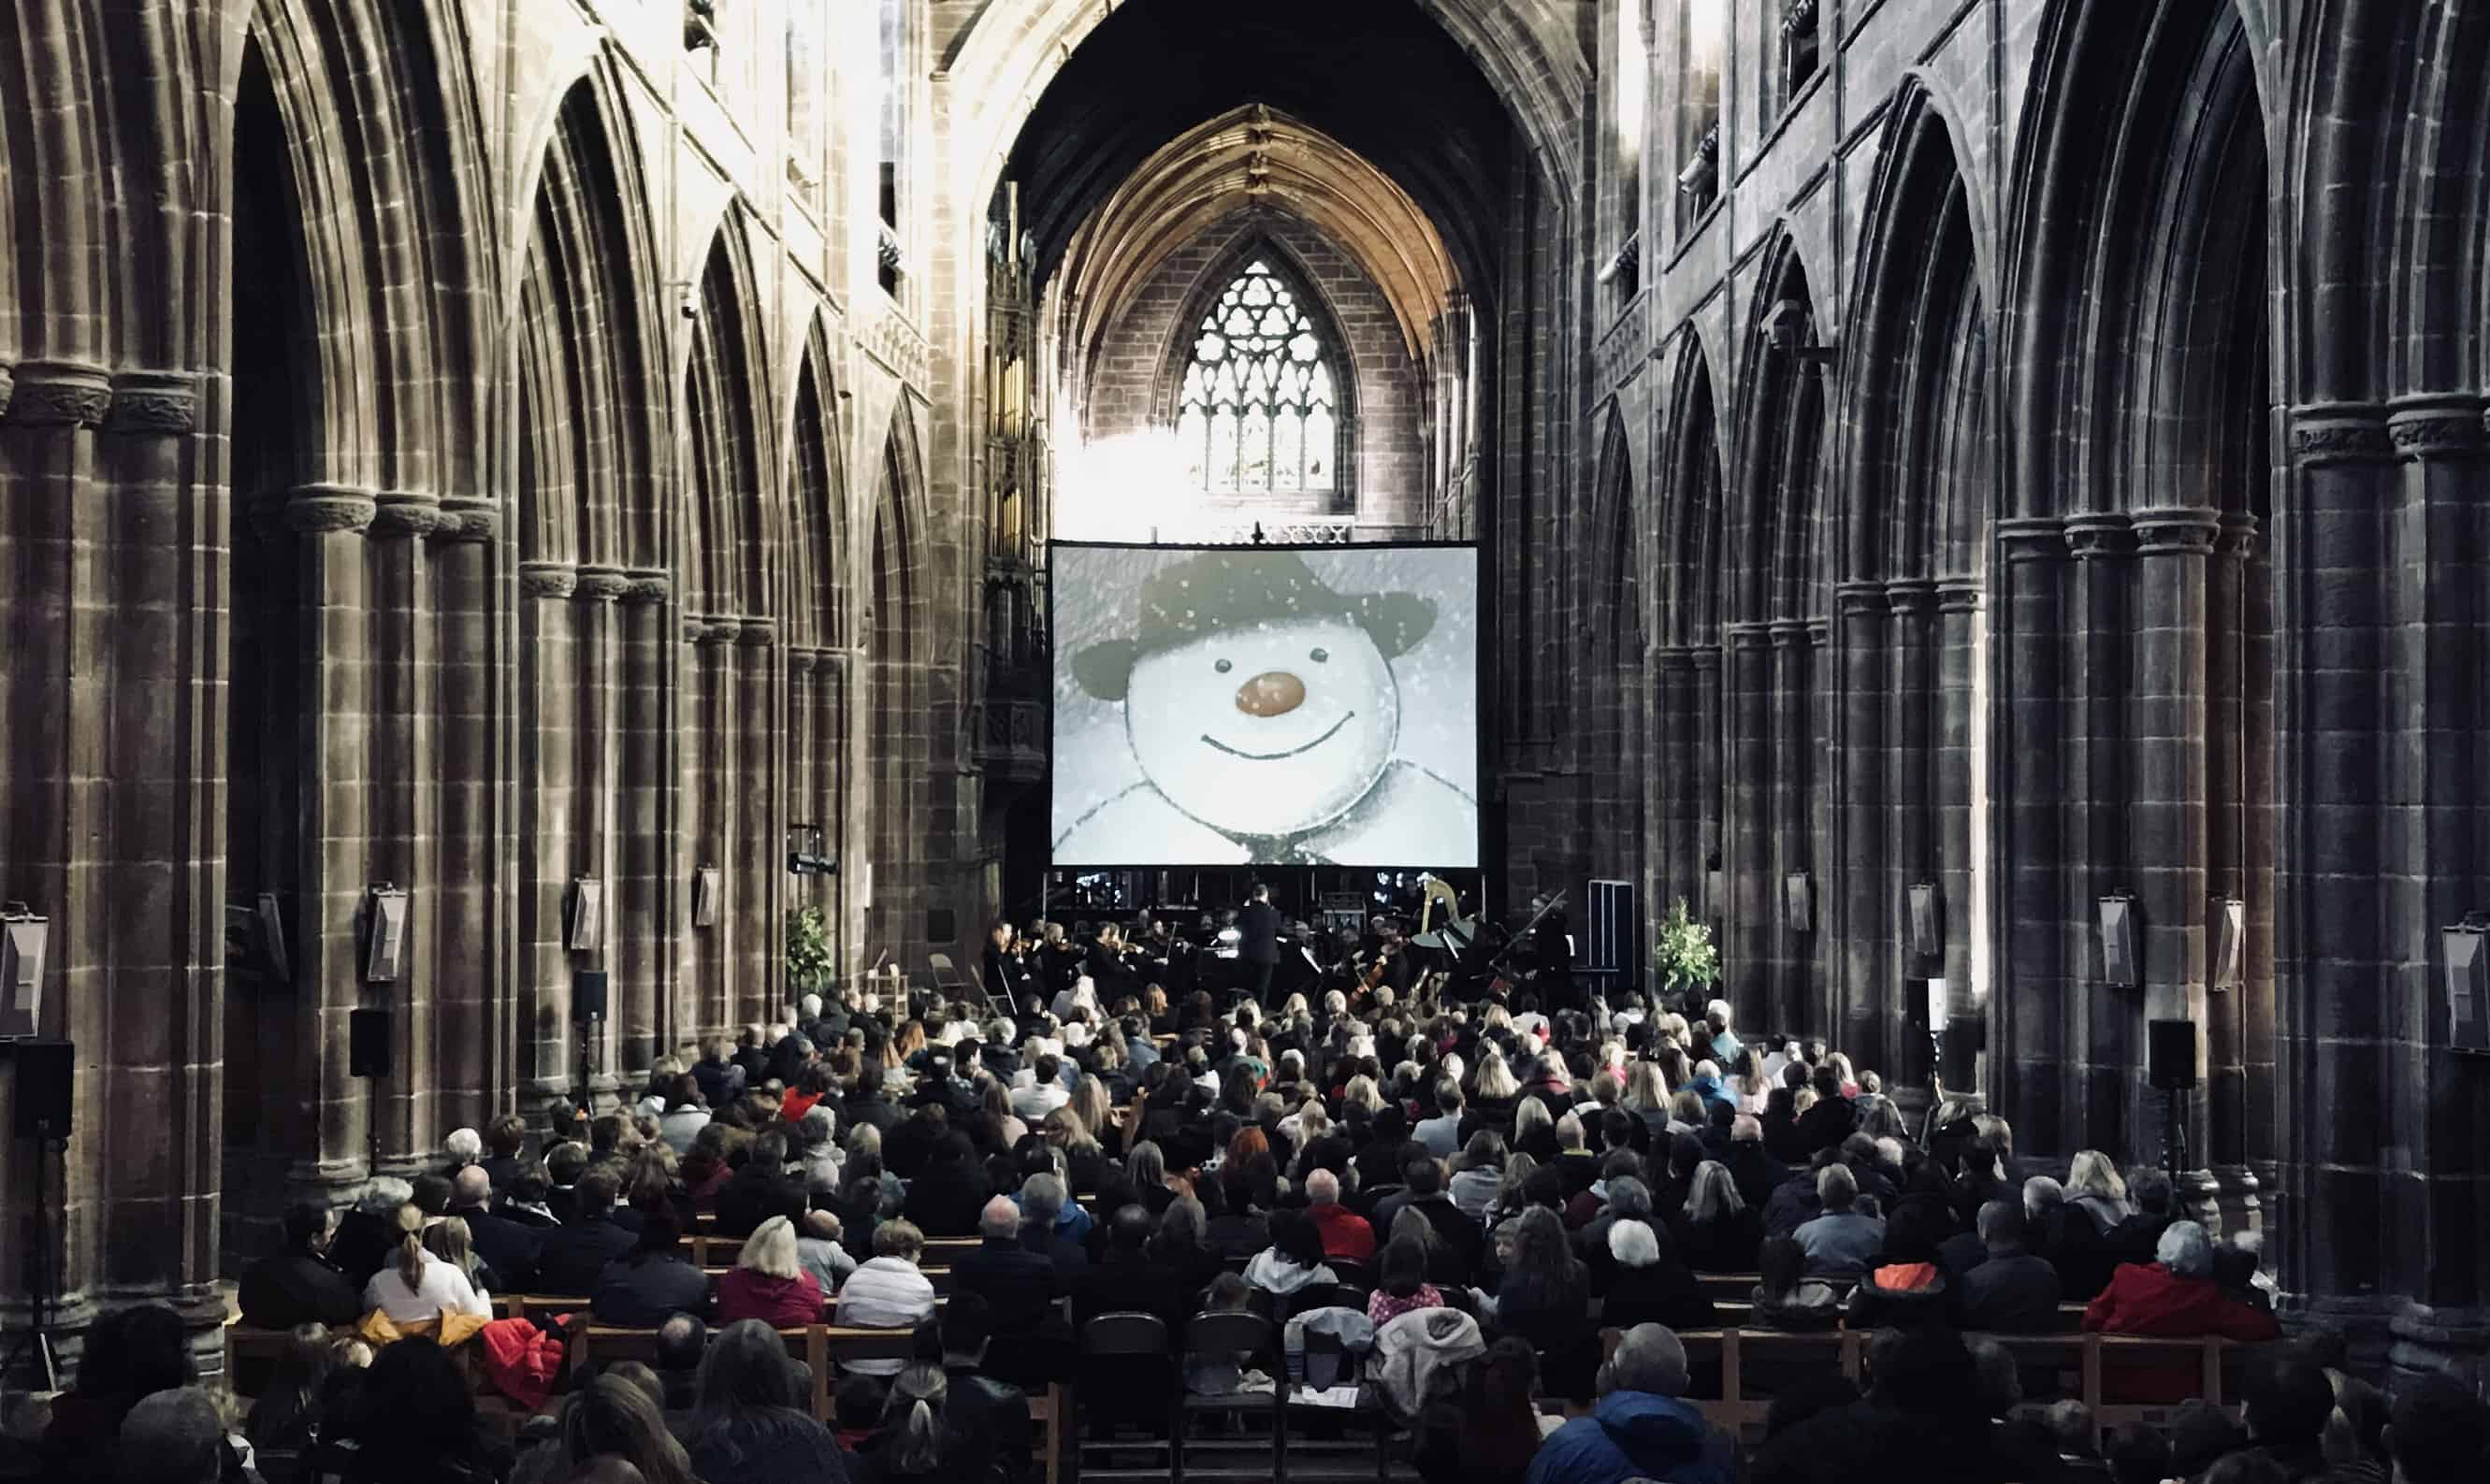 The Snowman Beverley Minster – A Christmas Treat!